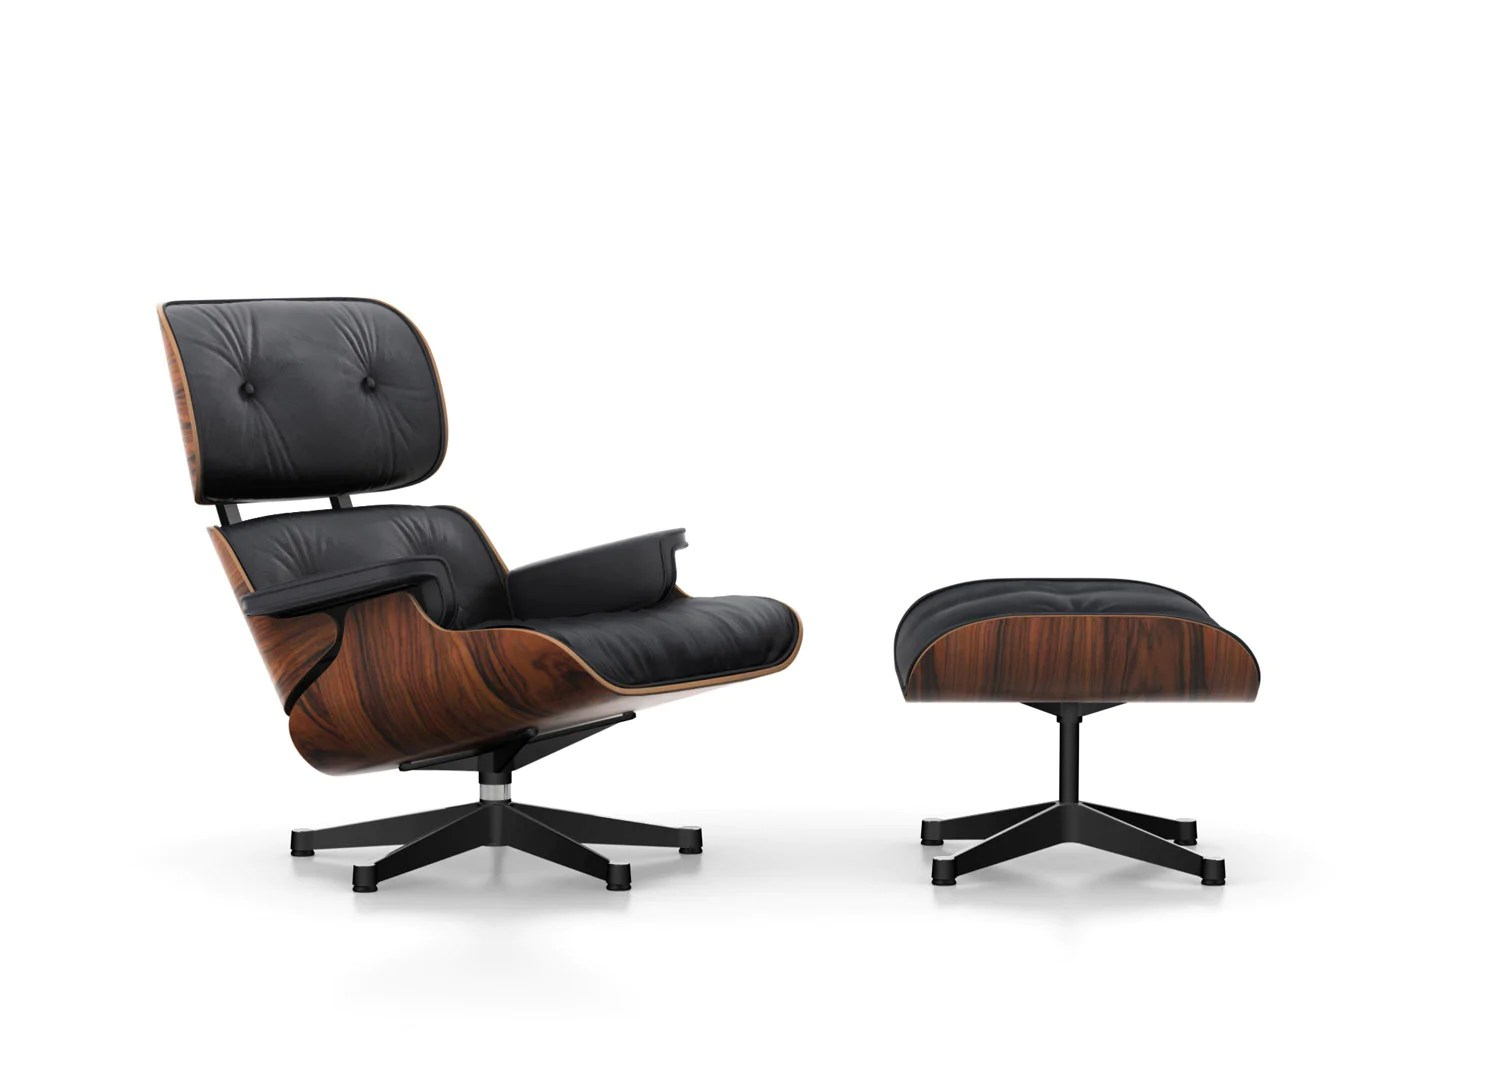 Chair Eames Eames Lounge Chair - Santos Palisander - Couch Potato Company